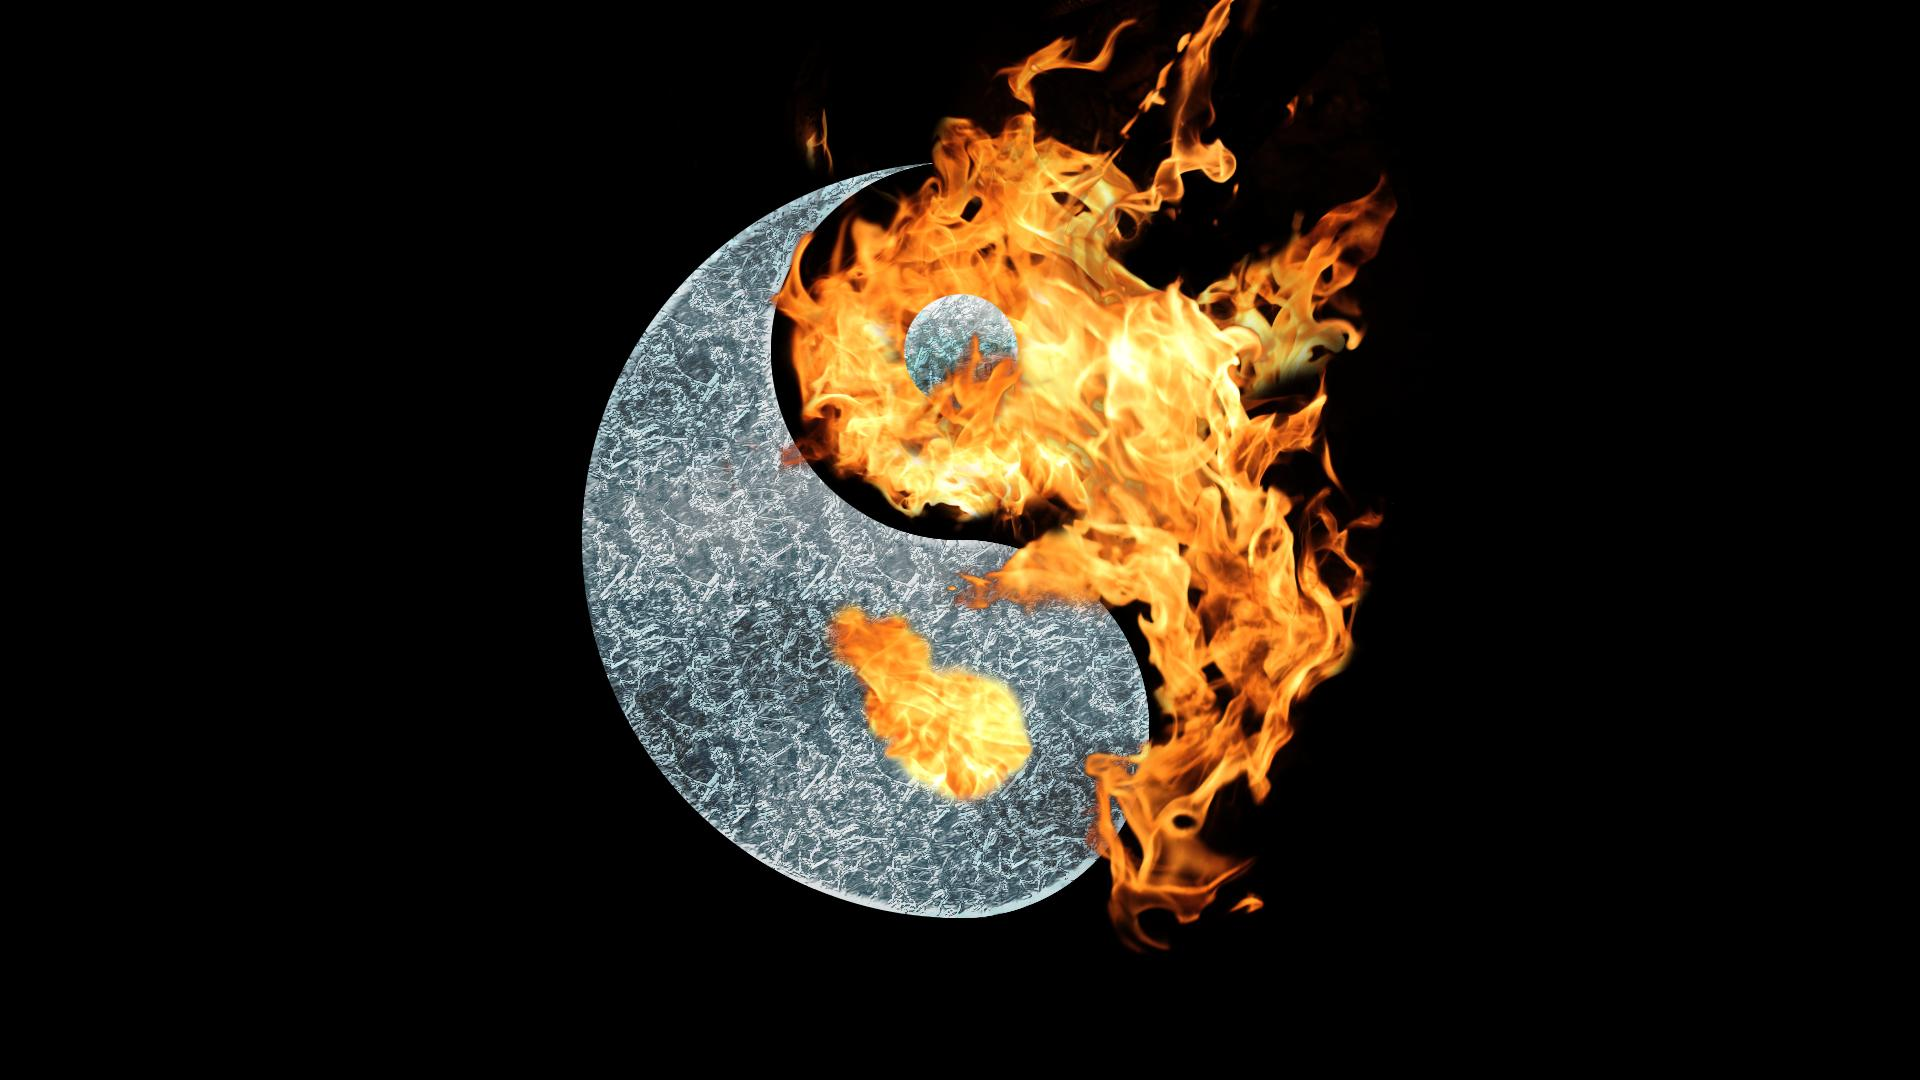 Yin-Yang-1920×1080-Ying-Yang-Backgrounds-Adorable-Wallpape-wallpaper-wpc90010882